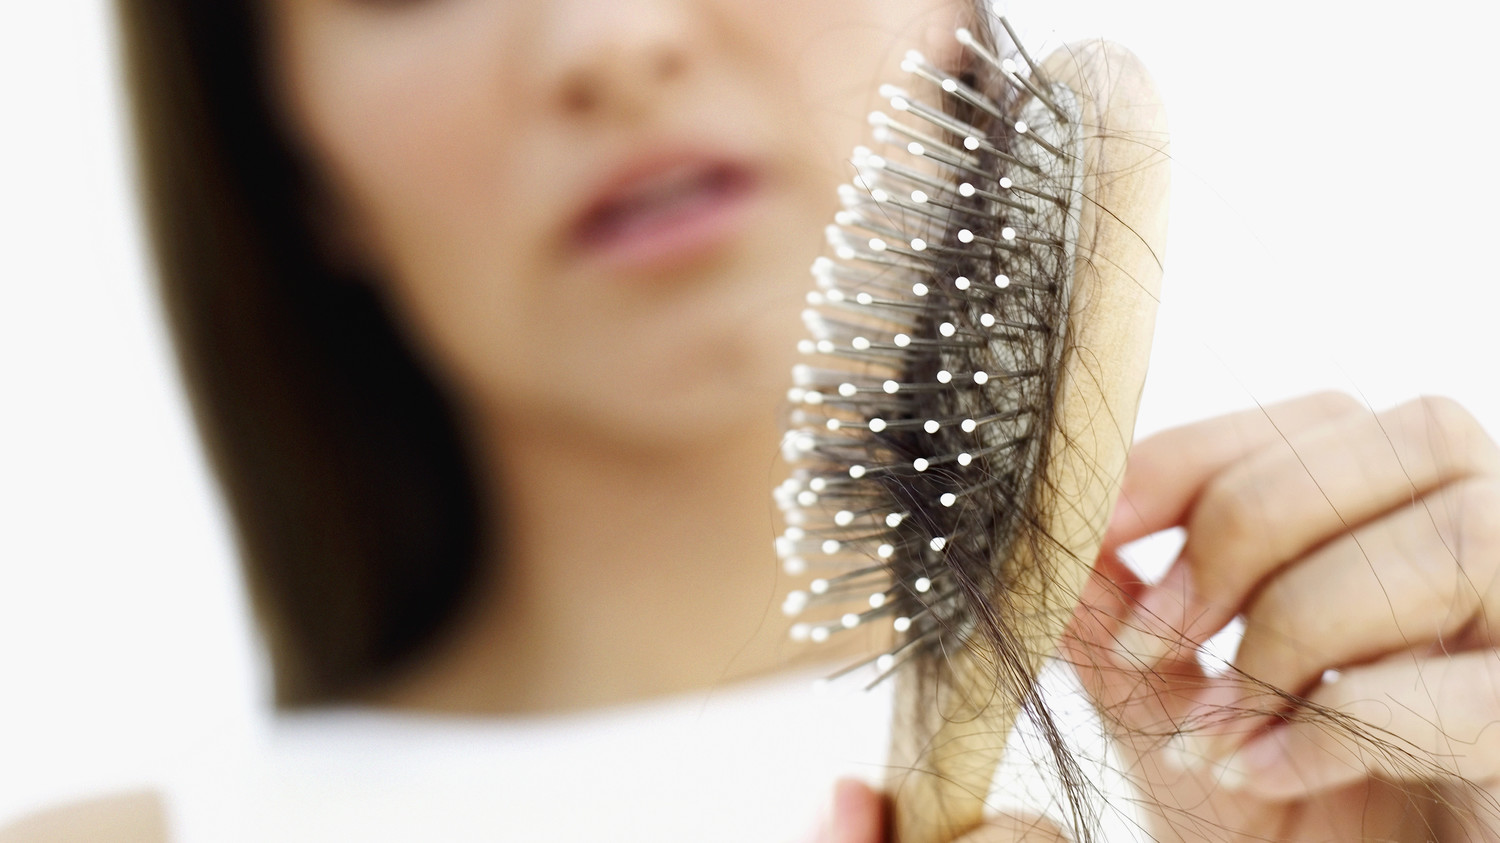 How to Take Care of Thinning Hair